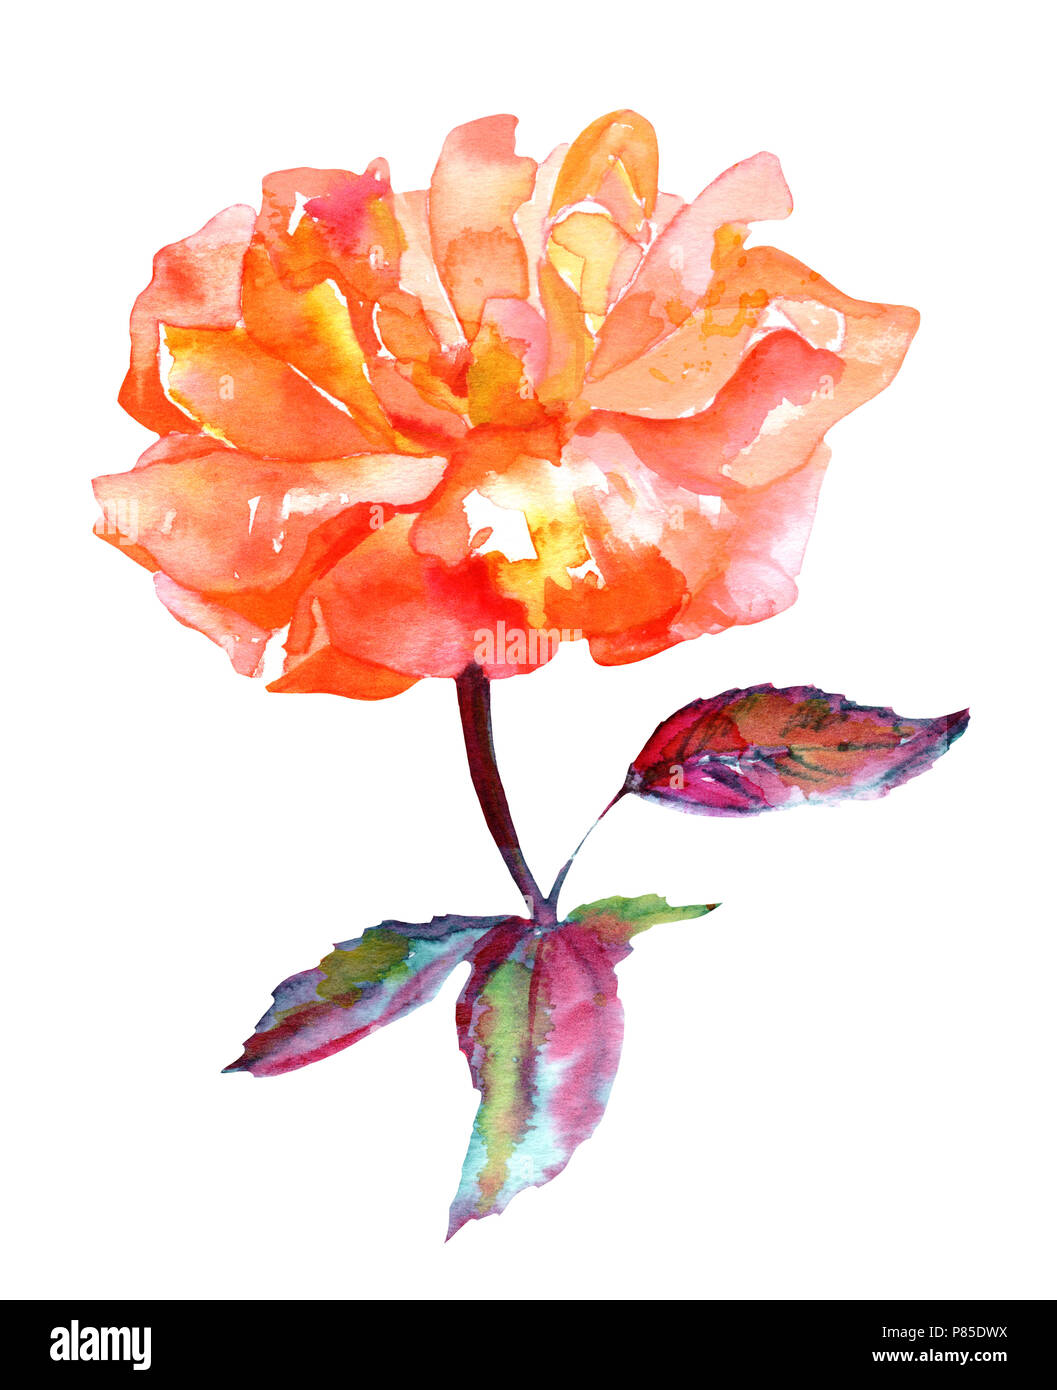 Watercolor Drawing Of Vibrant Rose Flower Isolated On A White